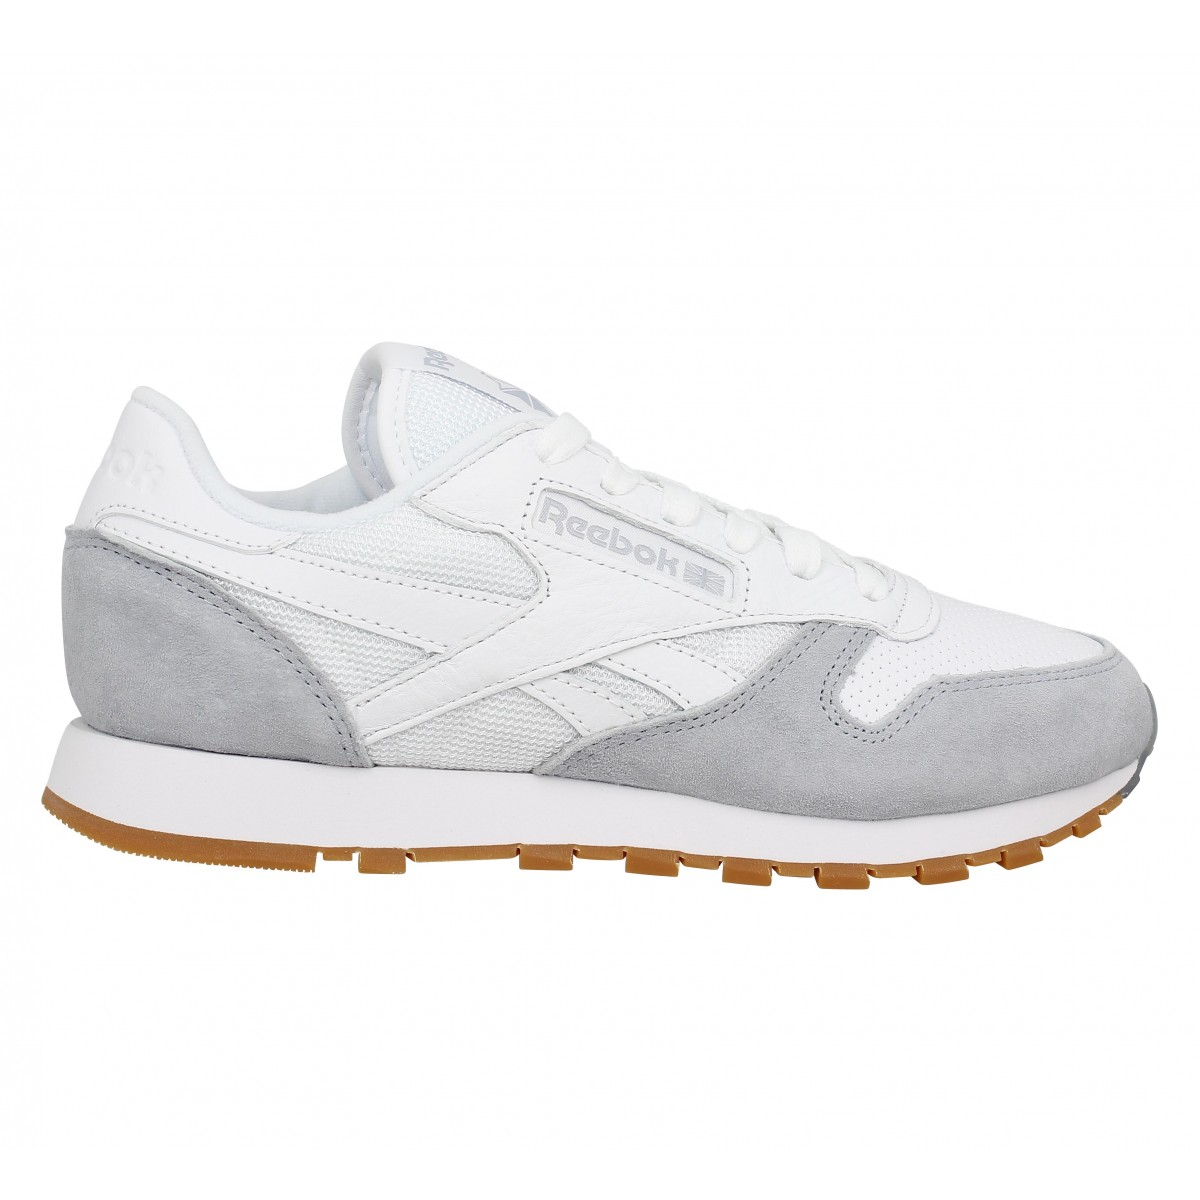 Reebok Classic Classic Leather Blanc / Gris - Chaussures Basket Homme